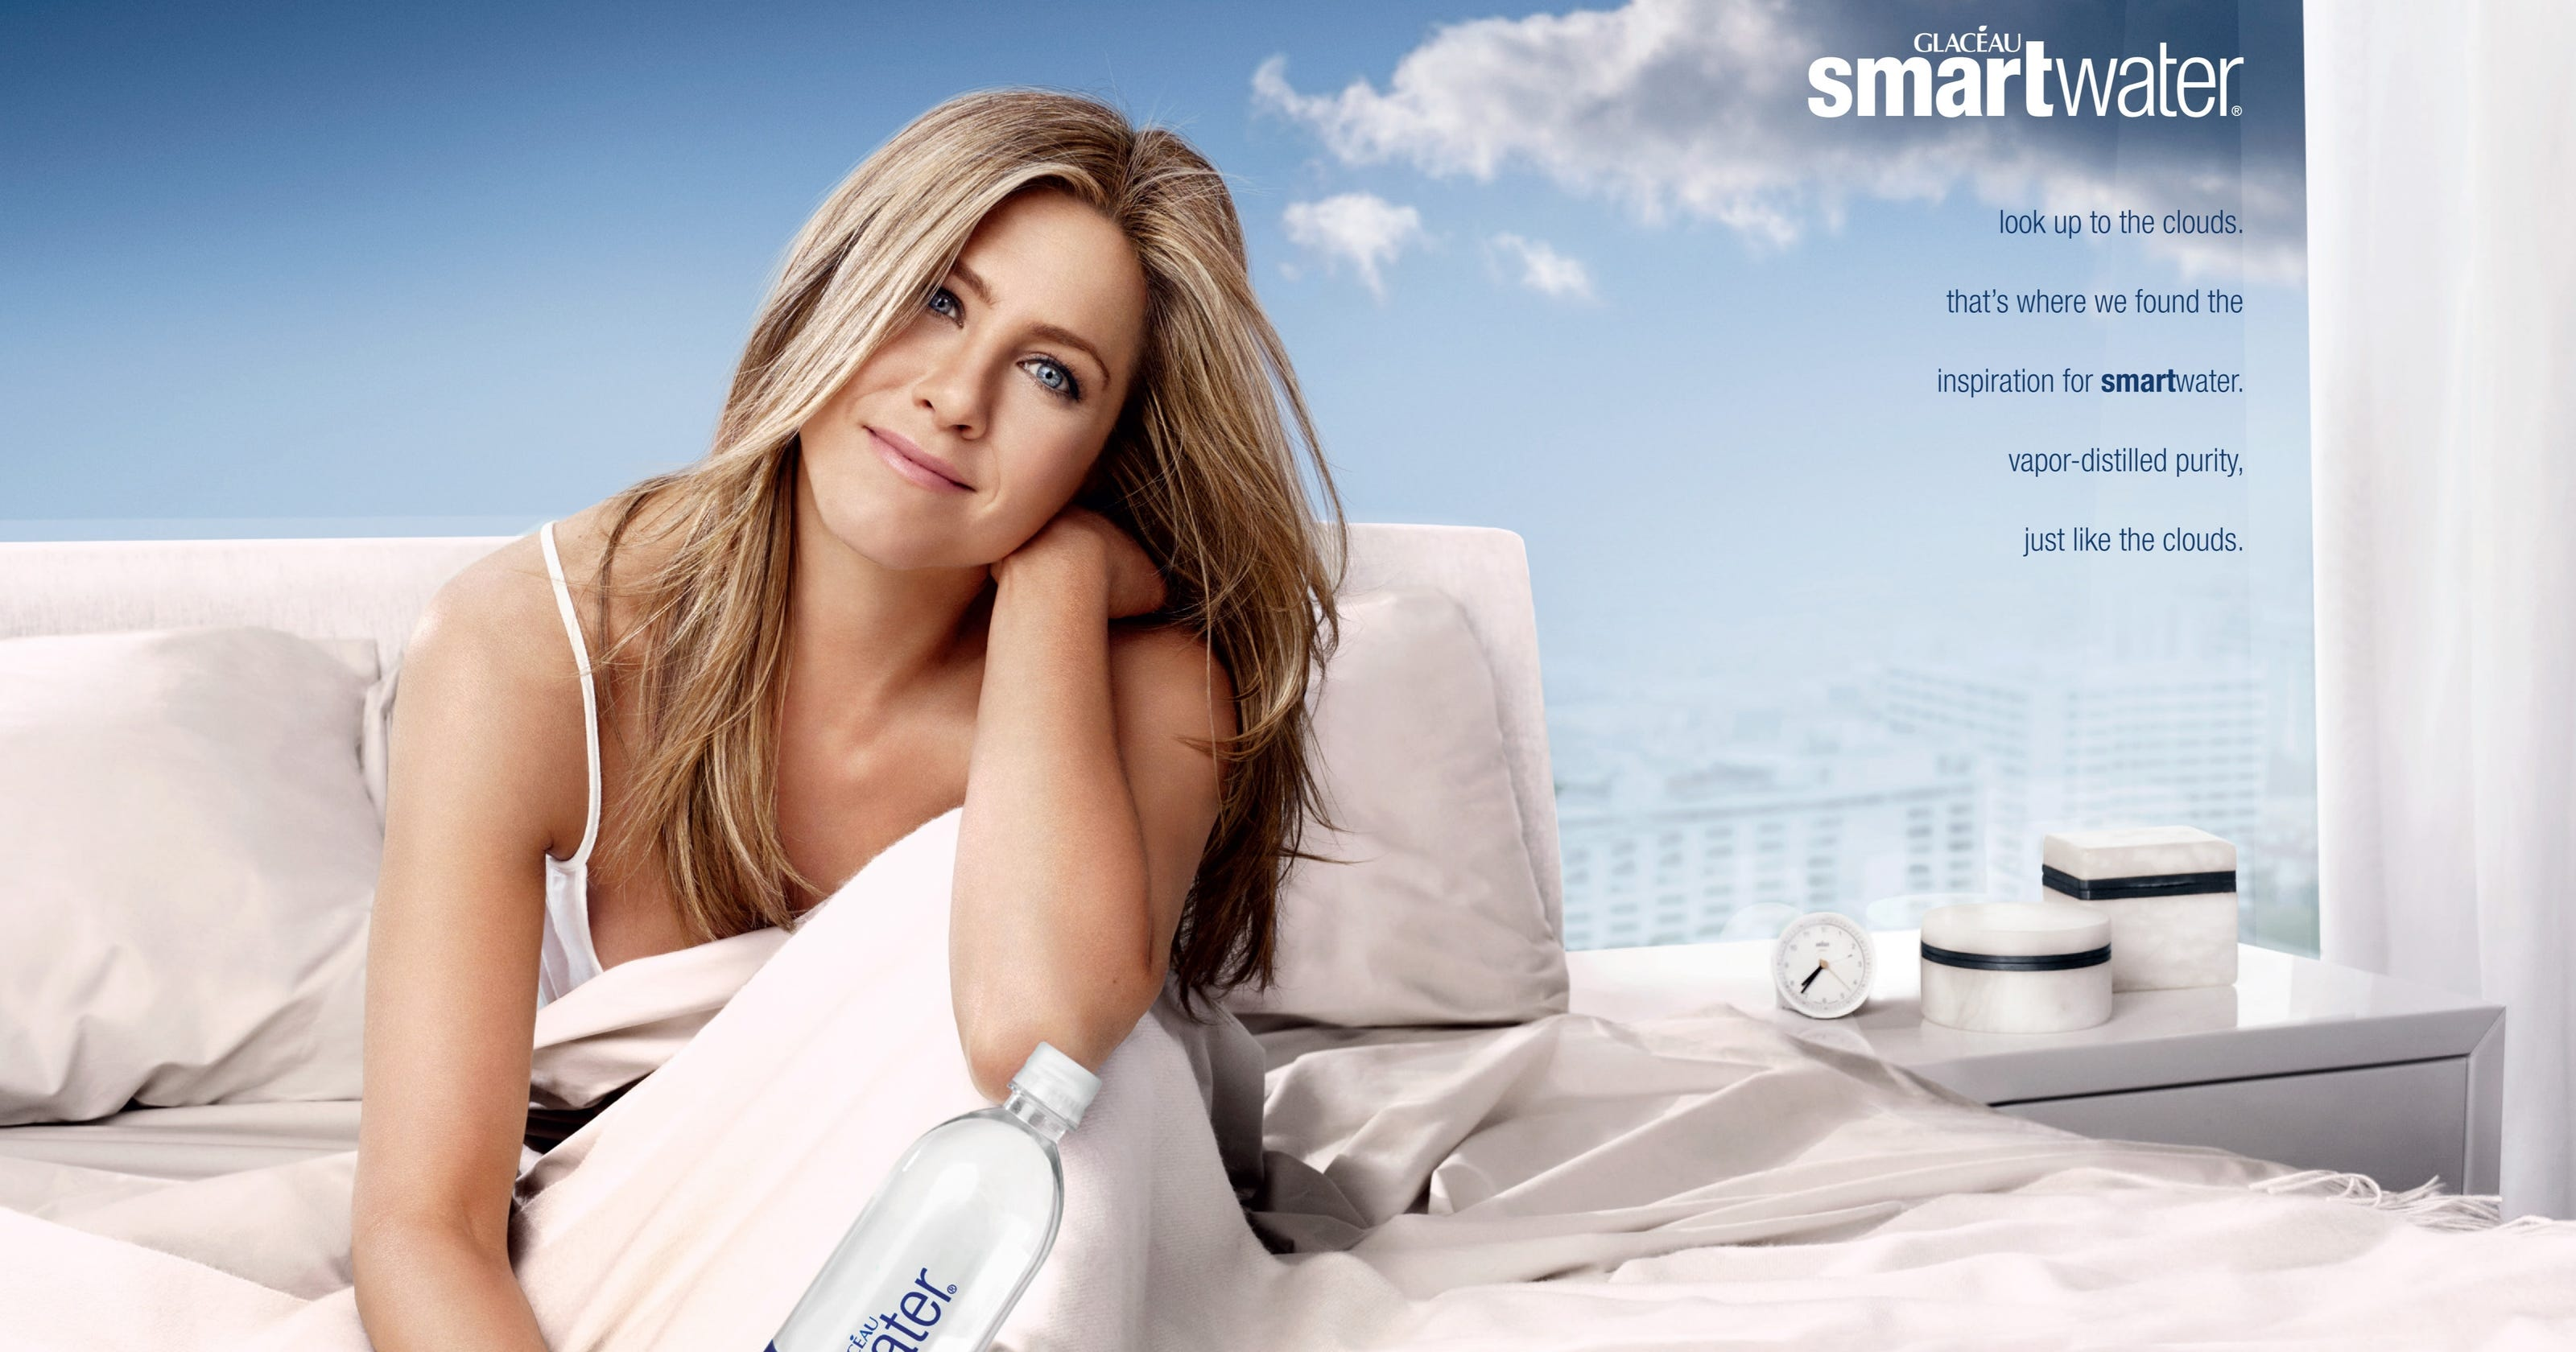 Jennifer Aniston Gets In Bed With Smartwater